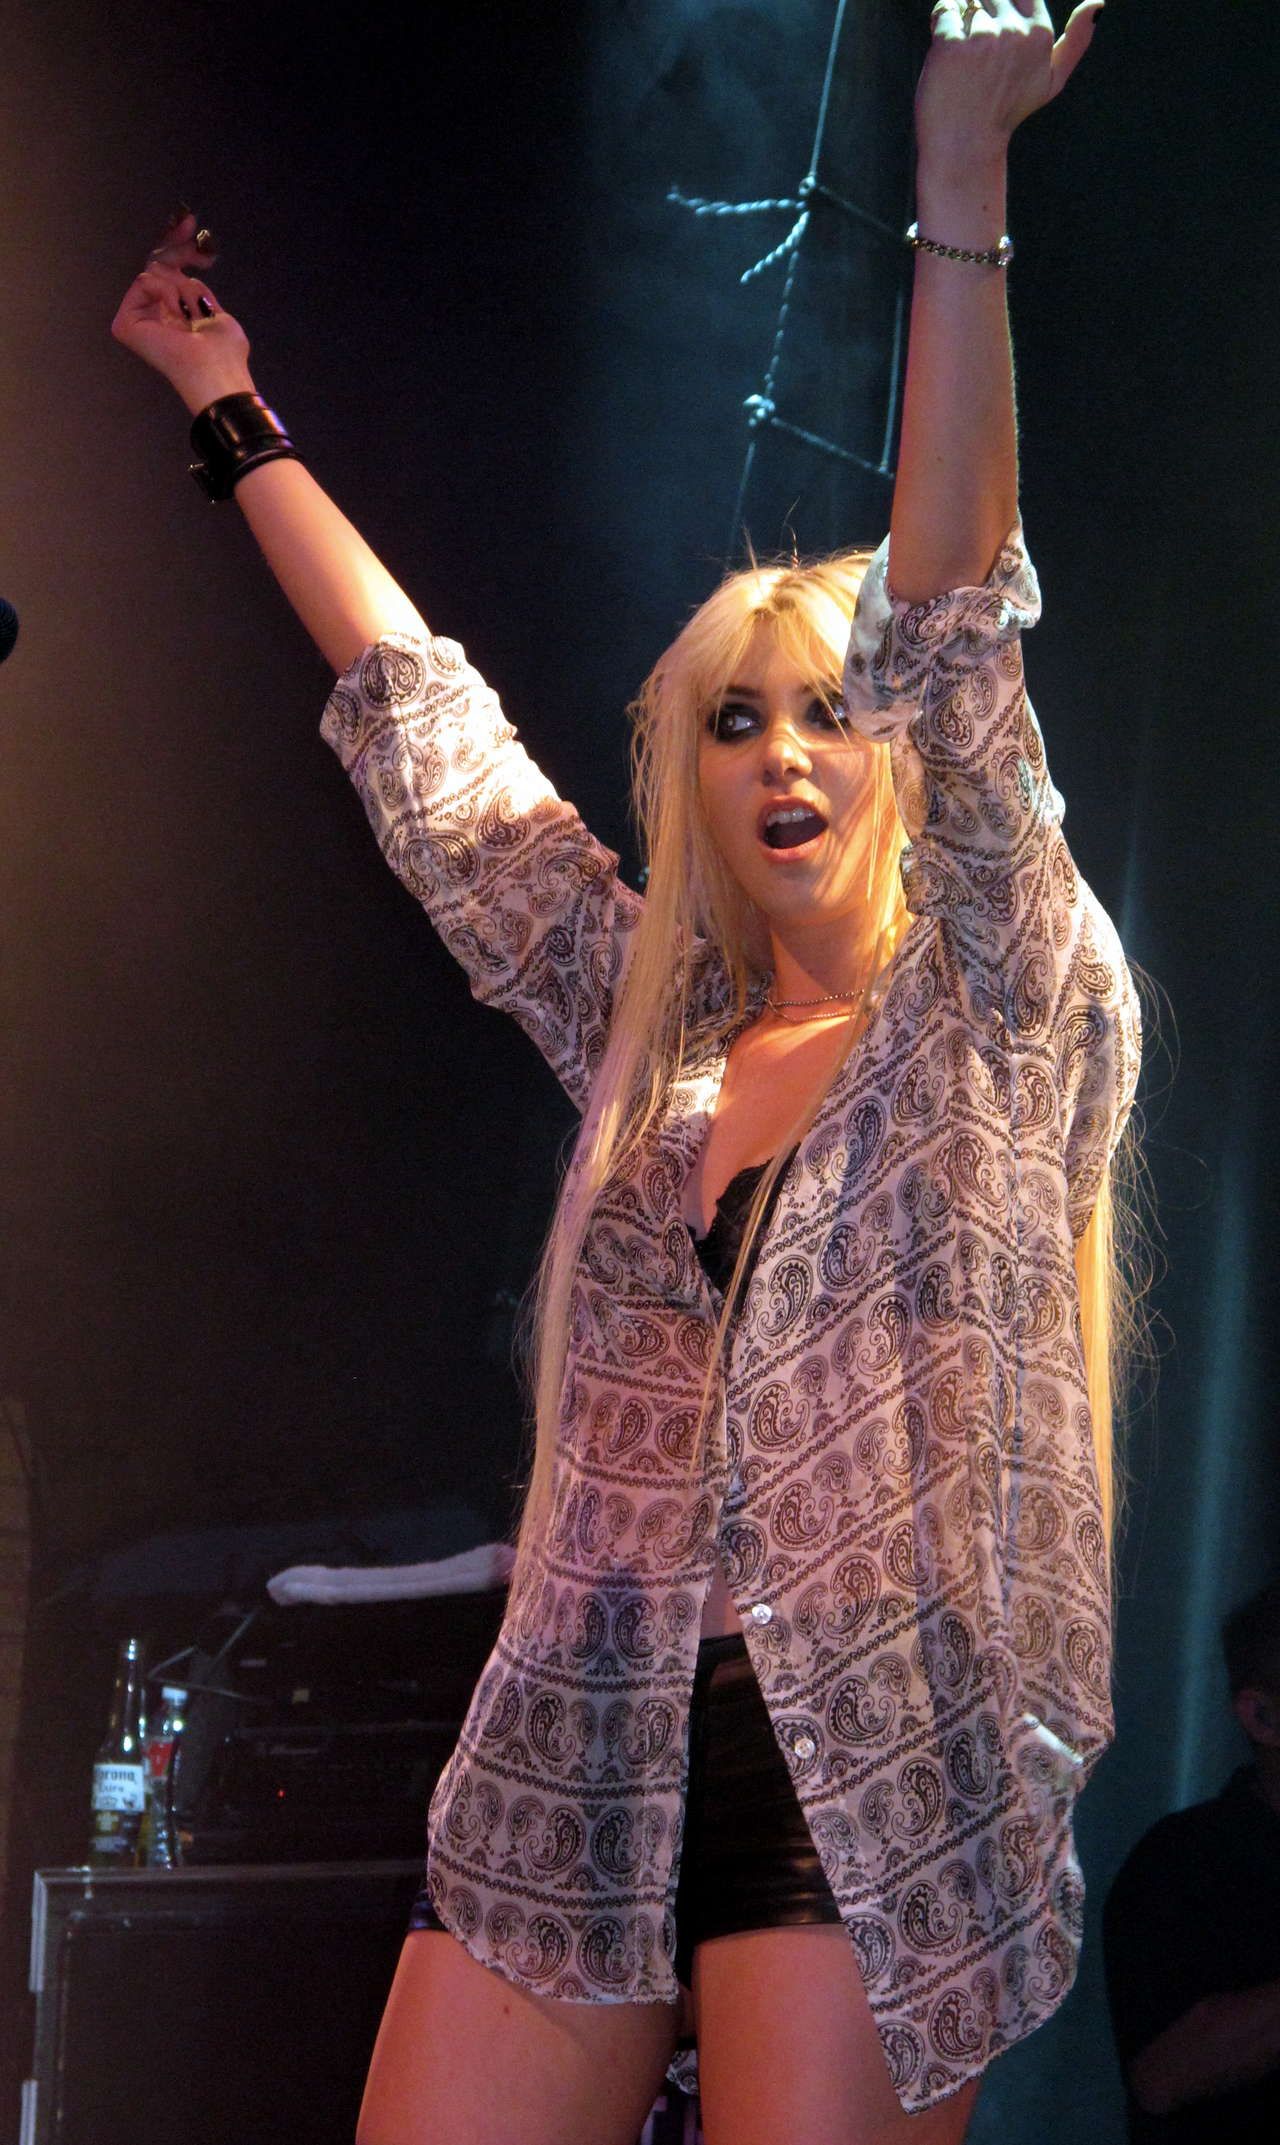 Taylor Momsen got lapdance from Jenna Haze on stage in House of Blues-32